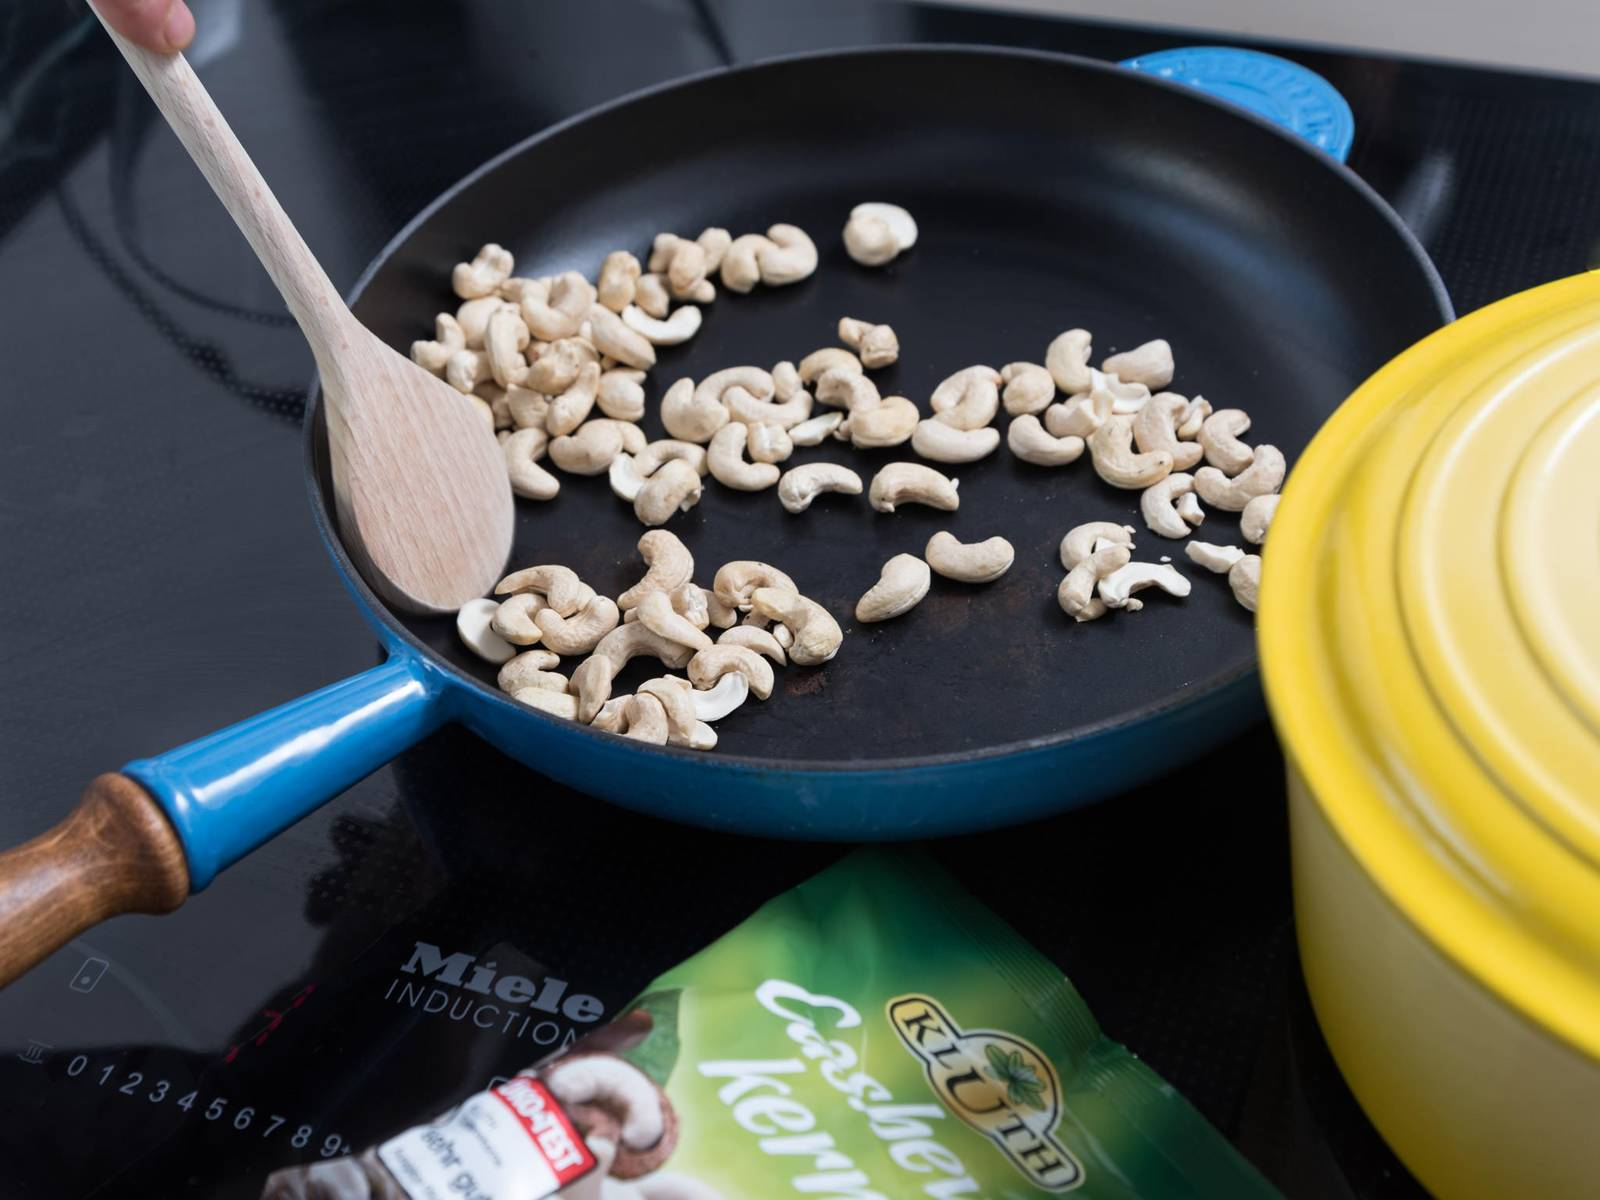 Heat a frying pan over medium heat. Transfer cashews into frying pan and toast for approx. 2 – 3 min., or until browned. Remove from pan and set aside.